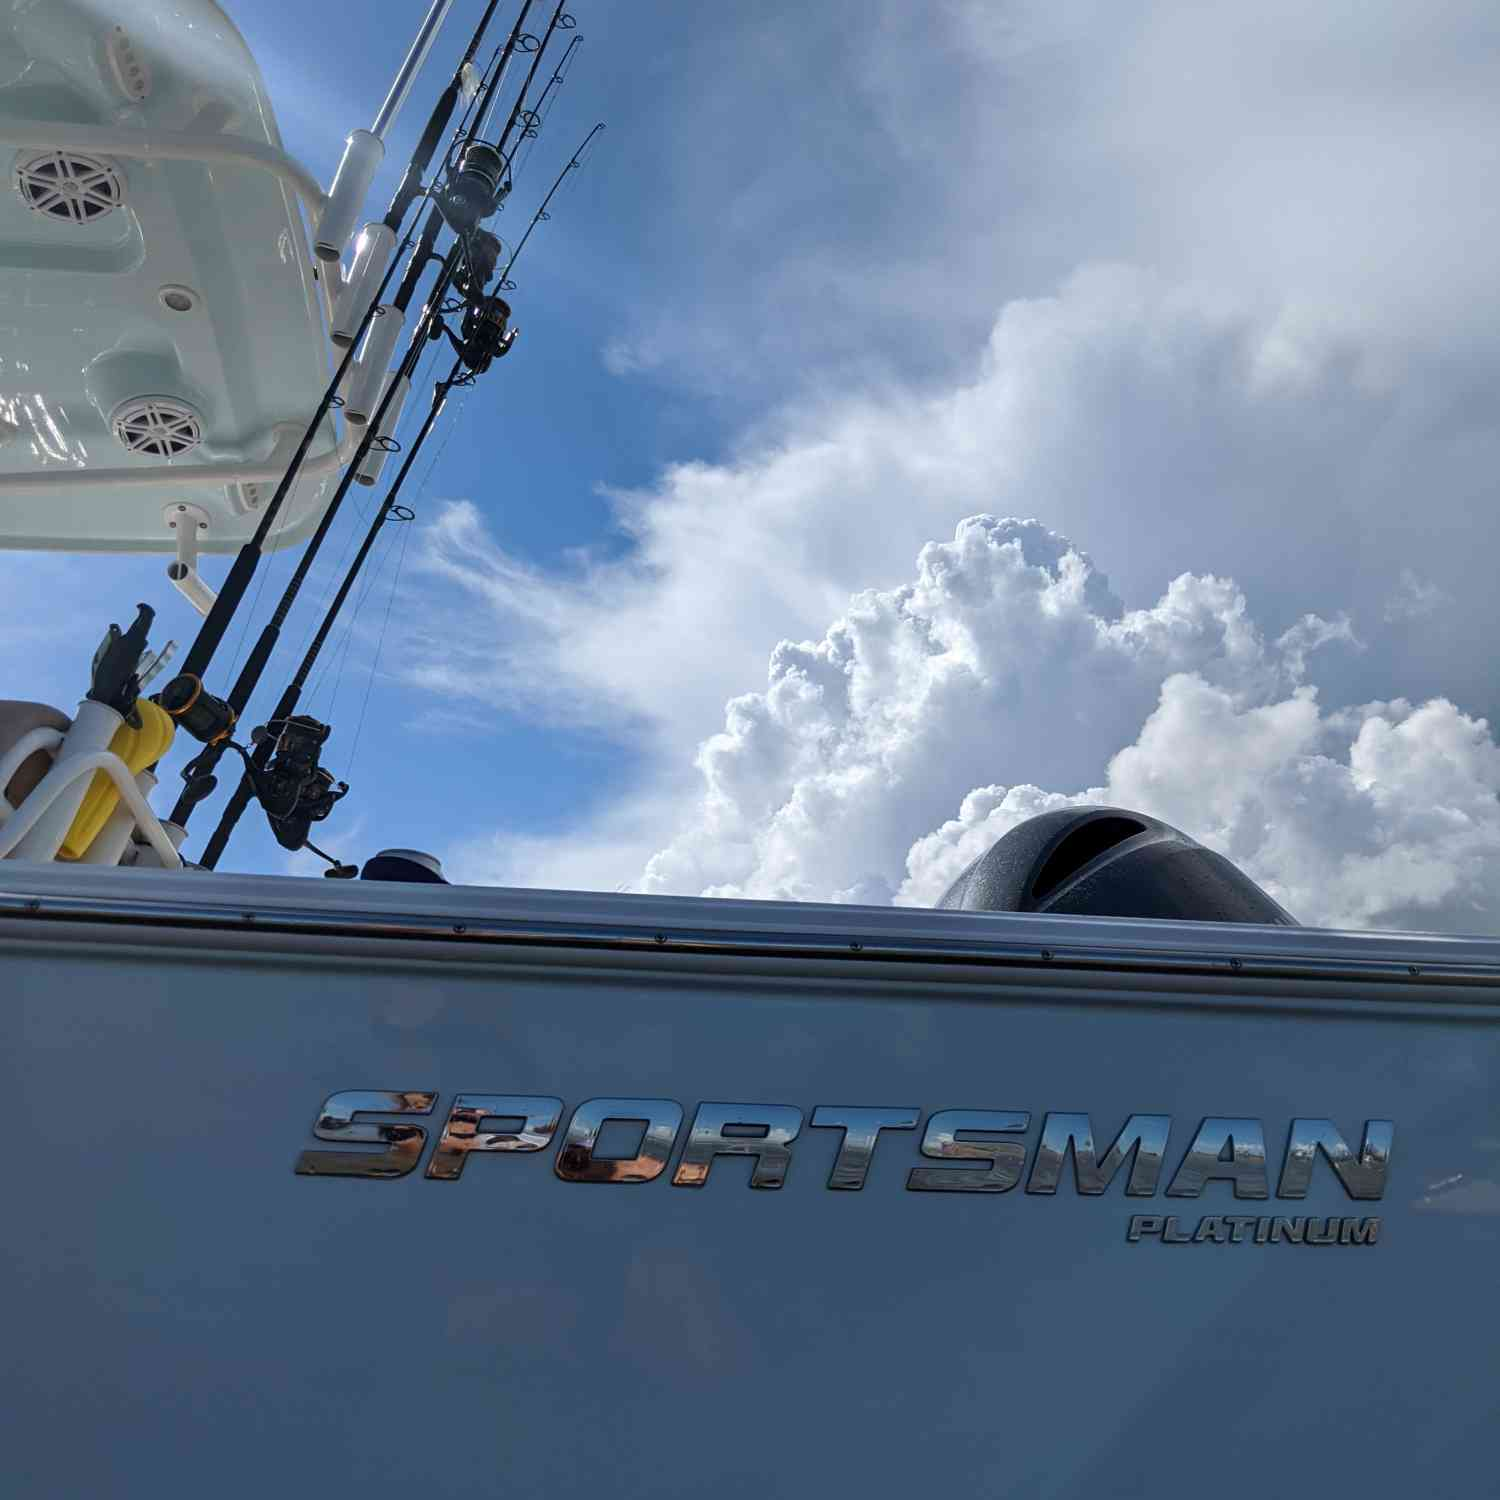 Title: Storms a'comin - On board their Sportsman Masters 227 Bay Boat - Location: Fort Sumter. Participating in the Photo Contest #SportsmanAugust2020